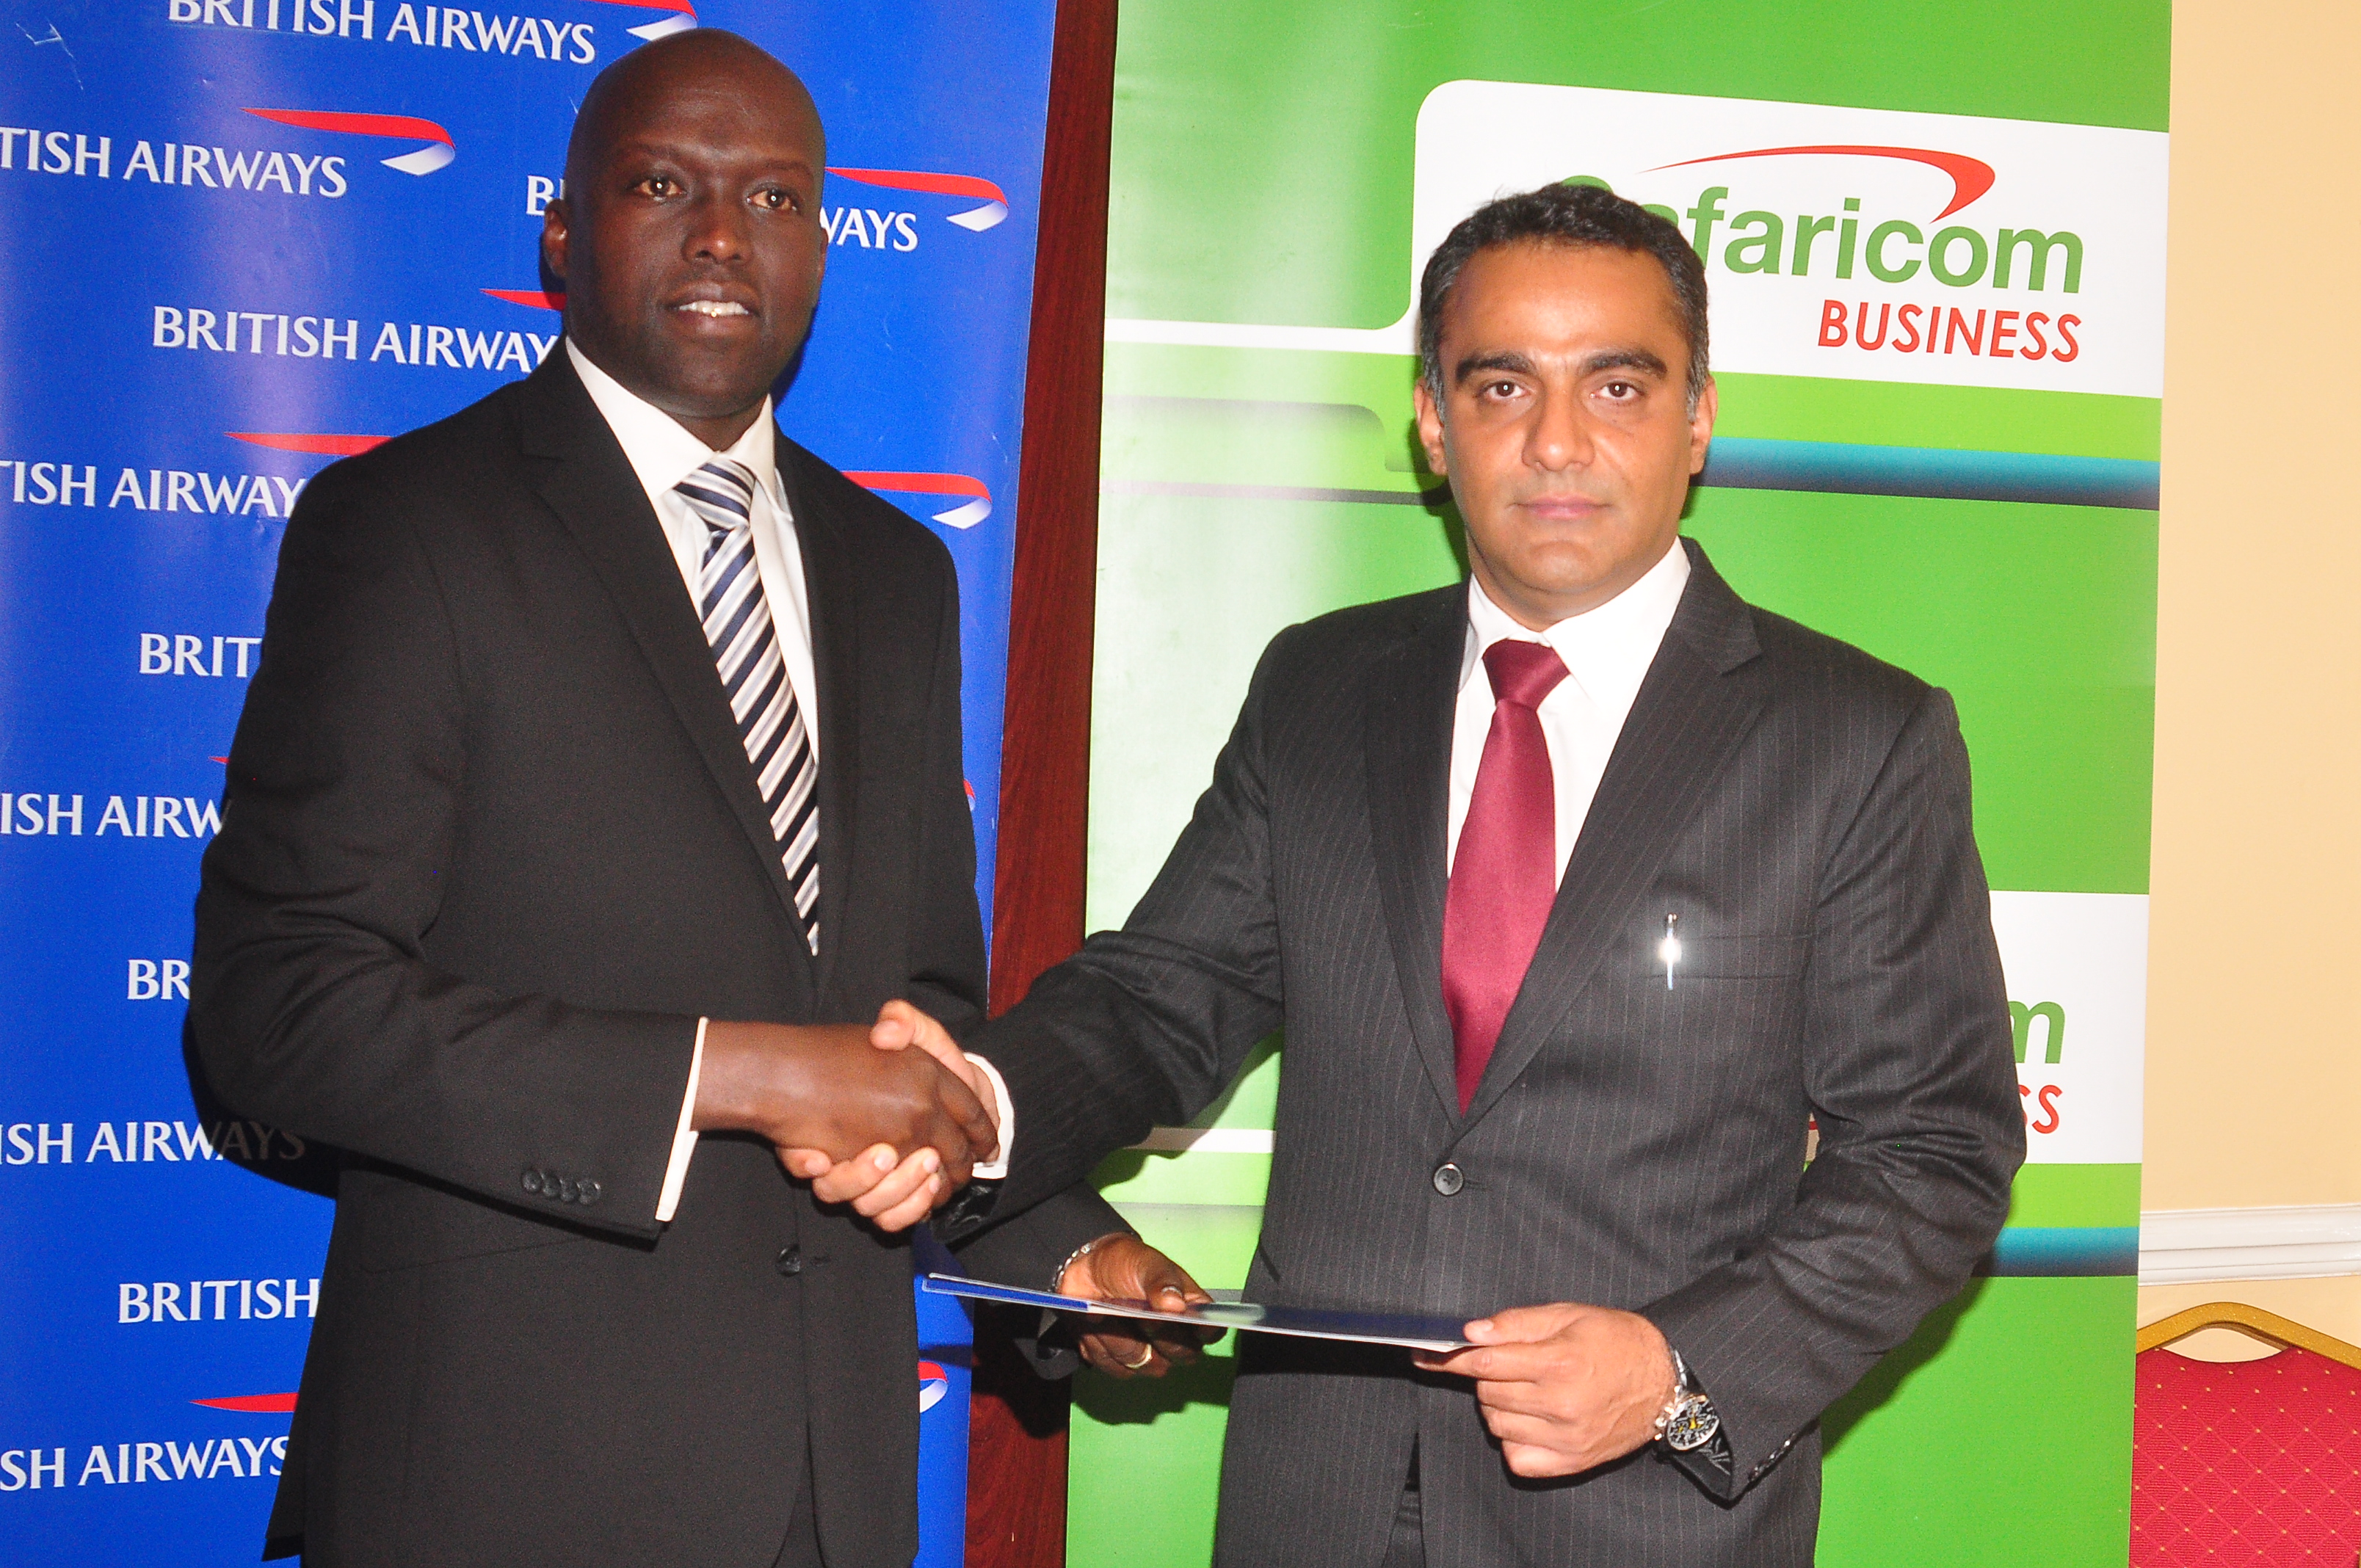 British Airways and Safaricom launch initiative for SME growth